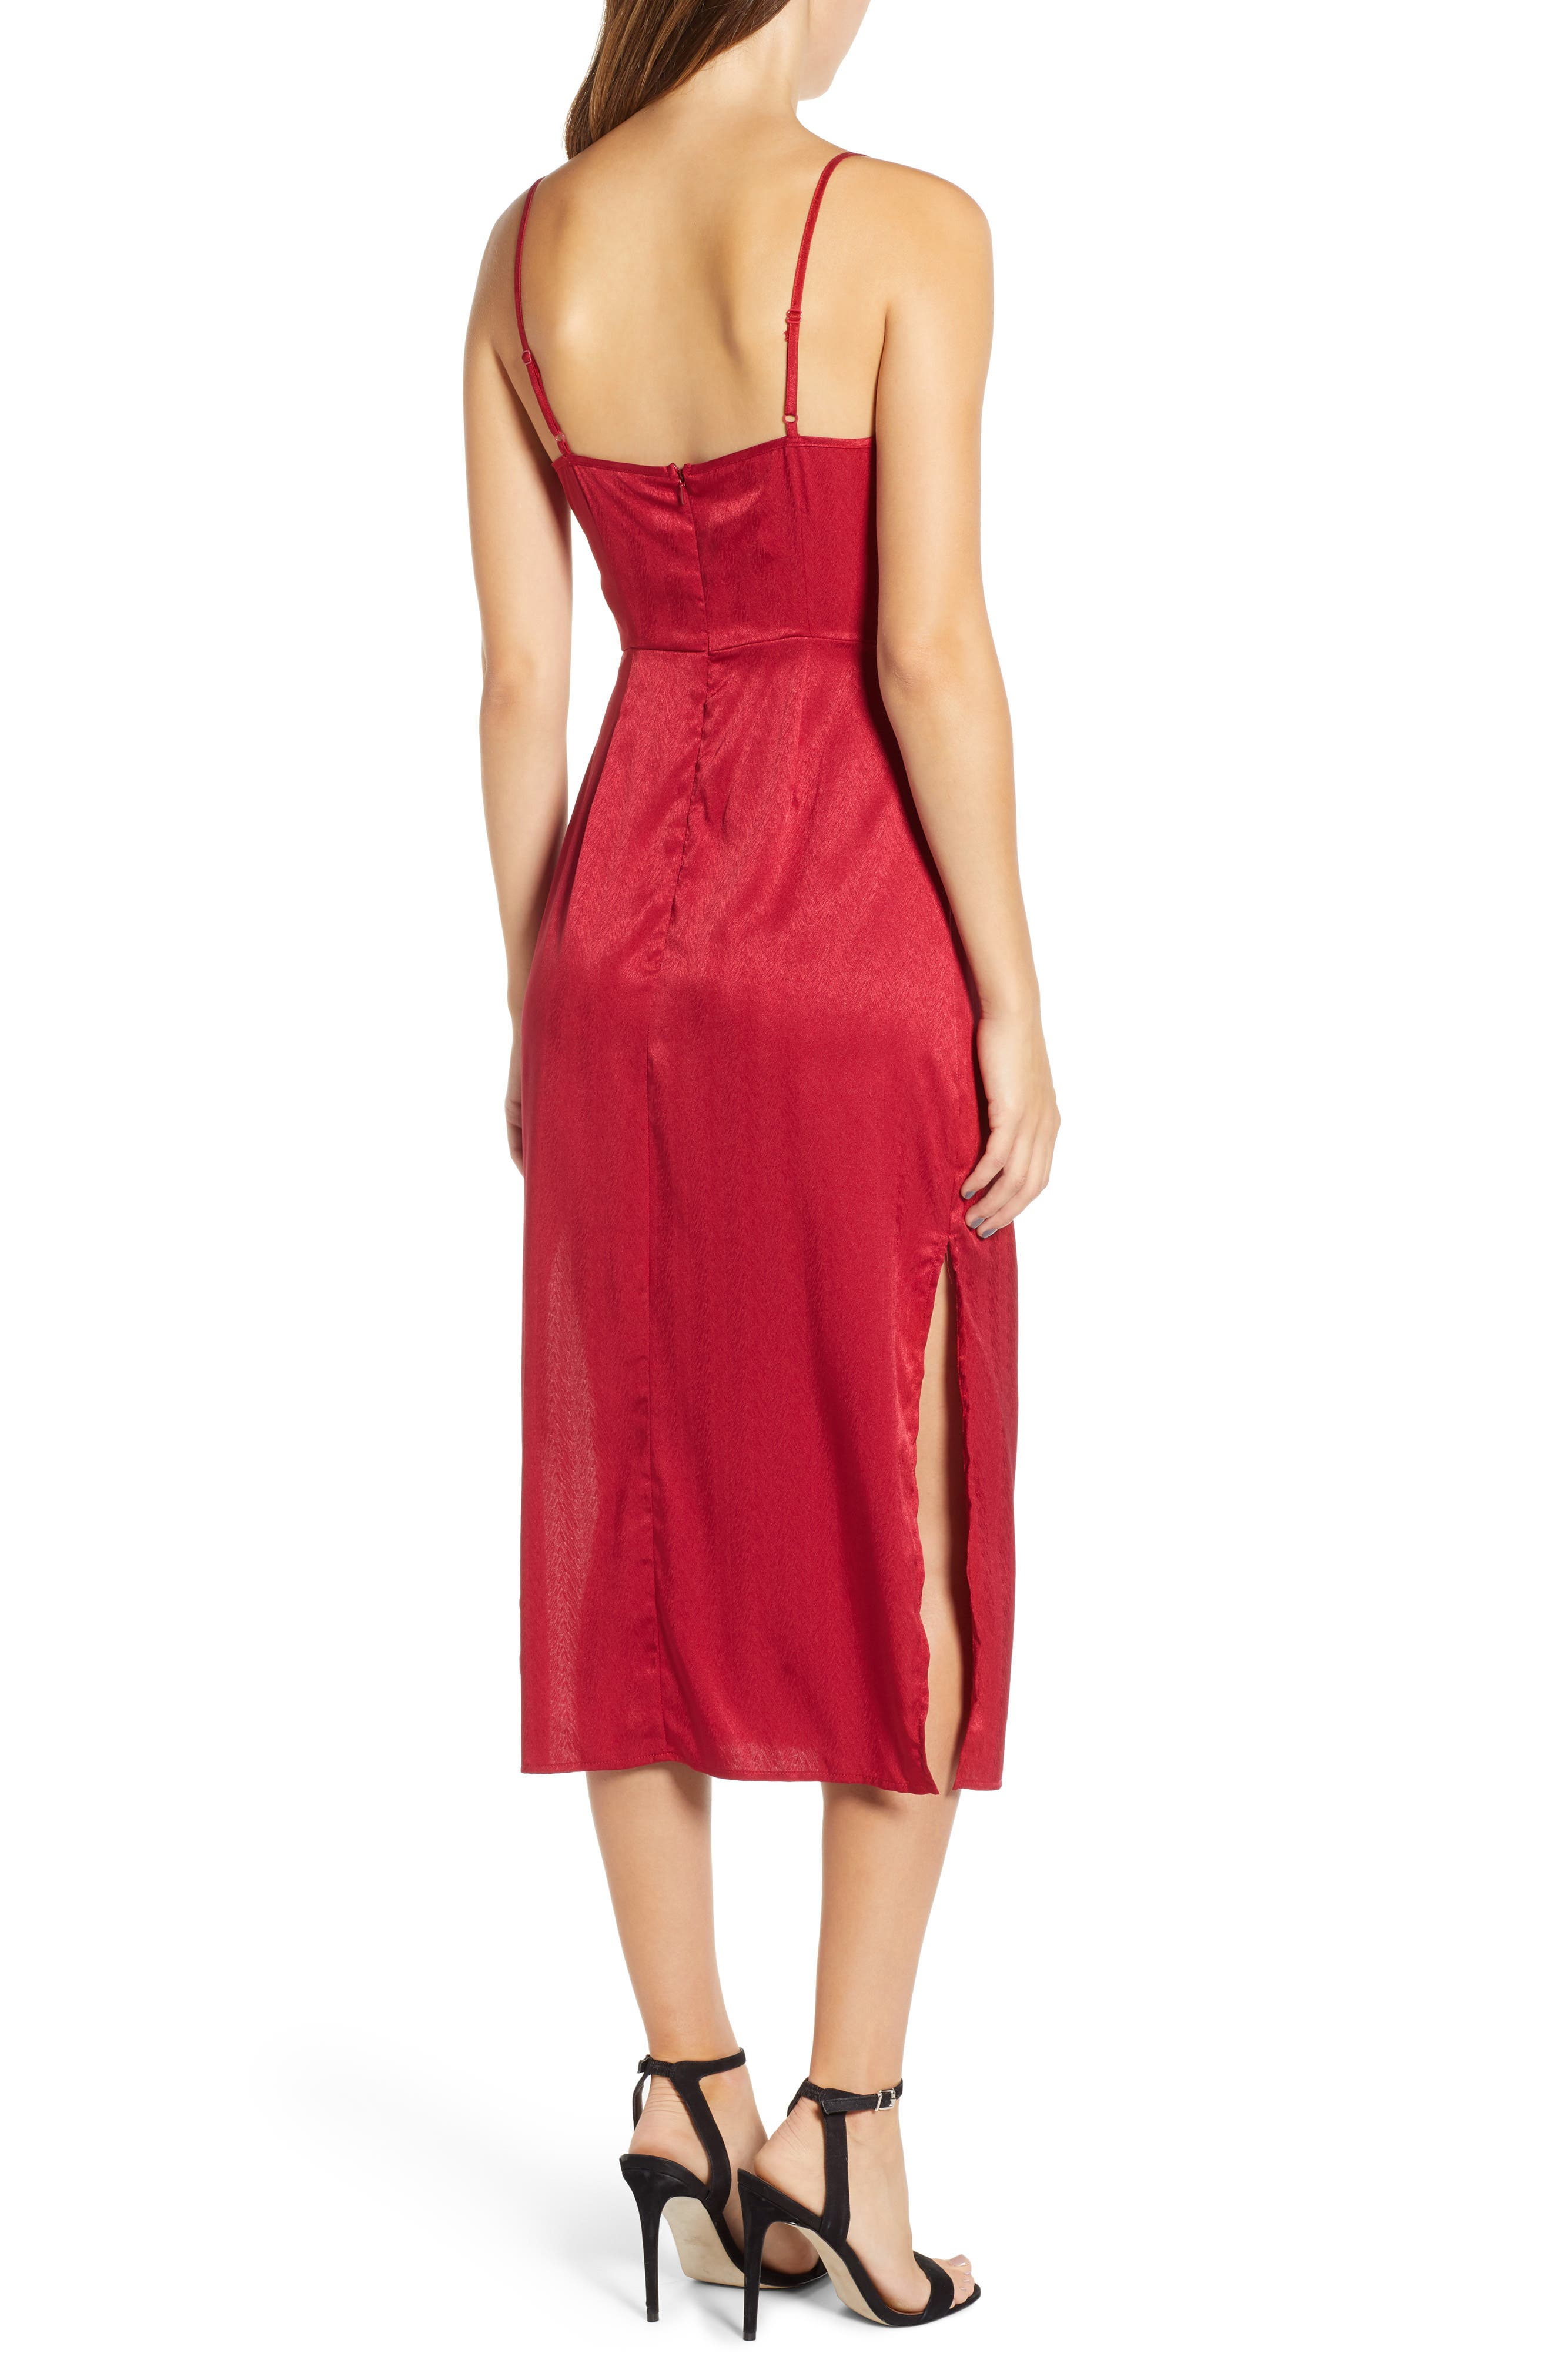 Lotti Cowl Neck Midi Dress,                             Alternate thumbnail 2, color,                             CHERRY